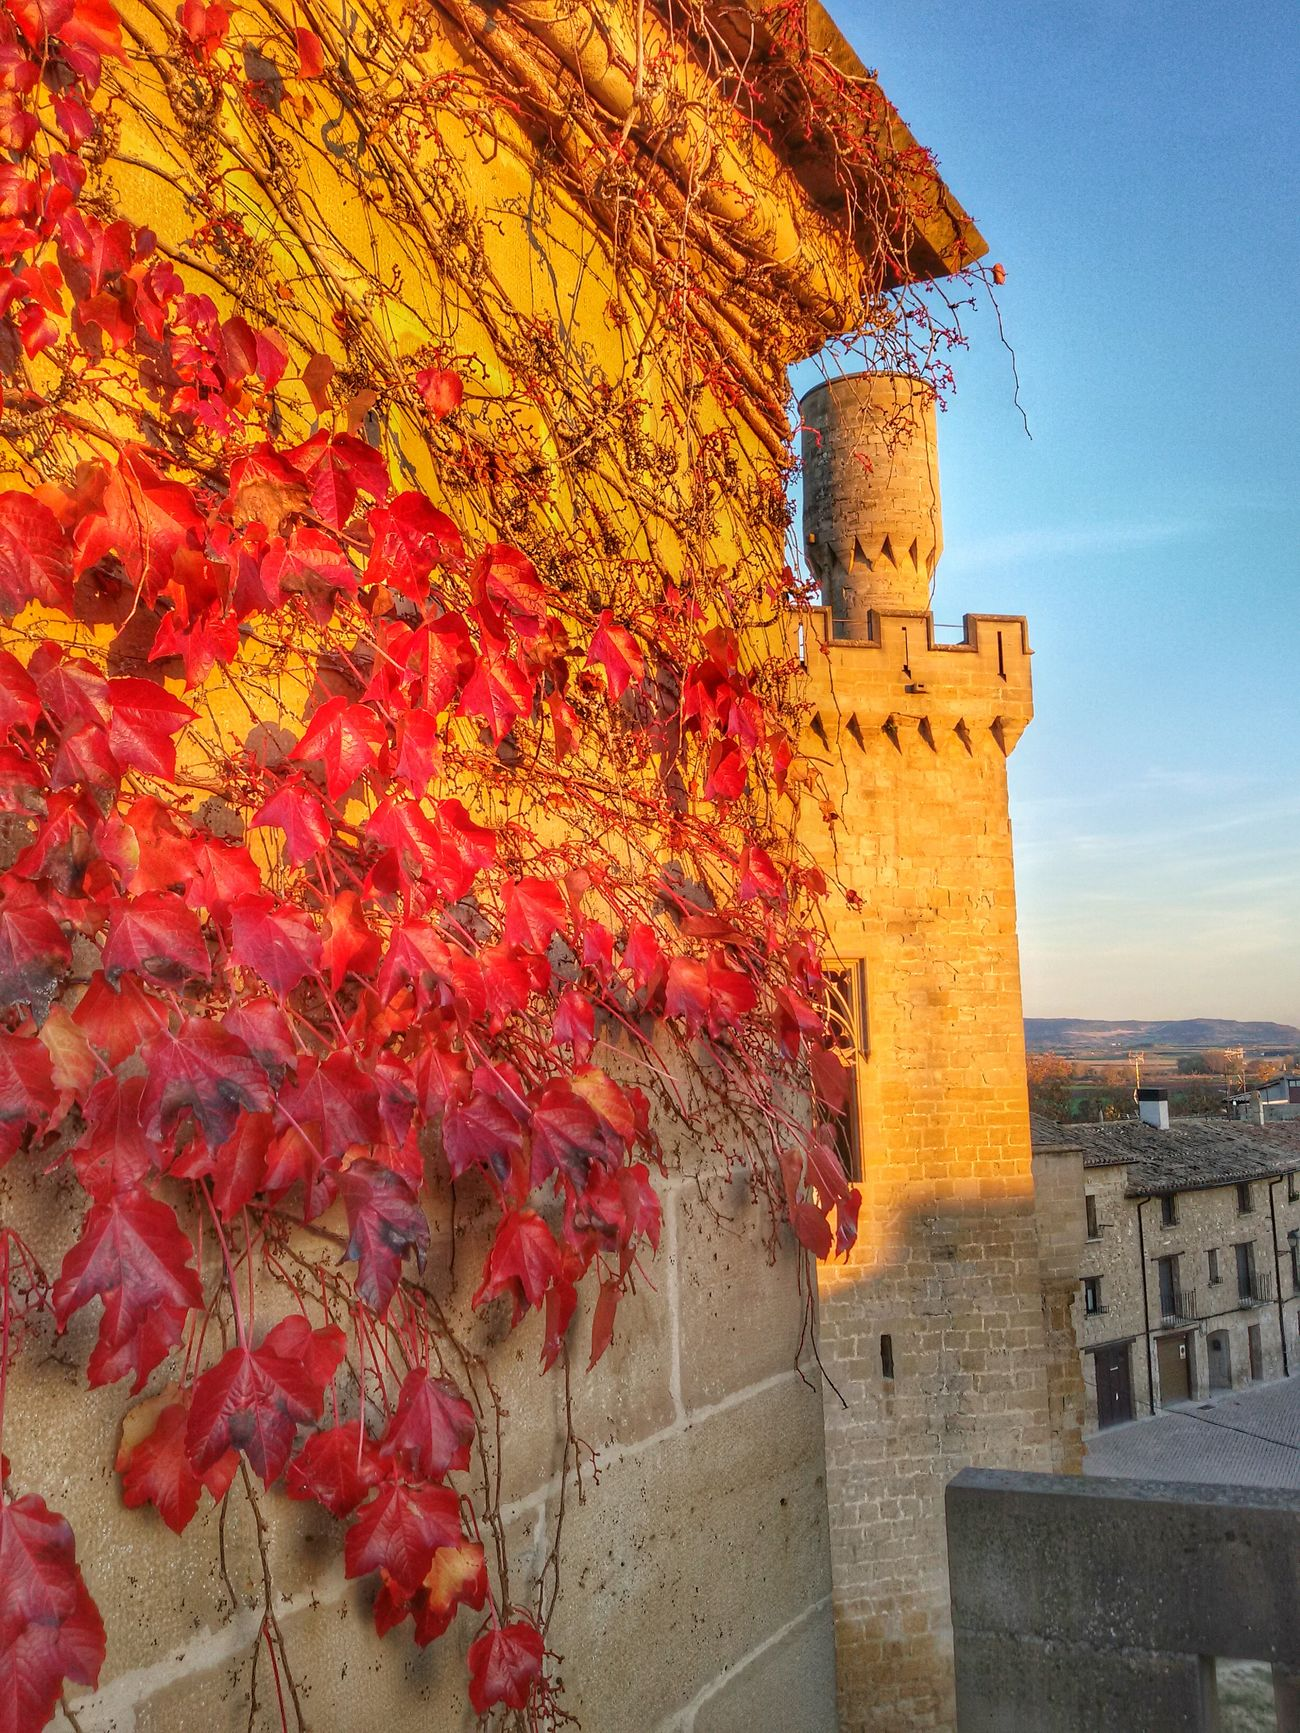 Arquitecture Interior Design Popular Photos Spain Heritage Architecture_collection Castles Navarre Traveling Sunset Silhouettes Beautiful Day